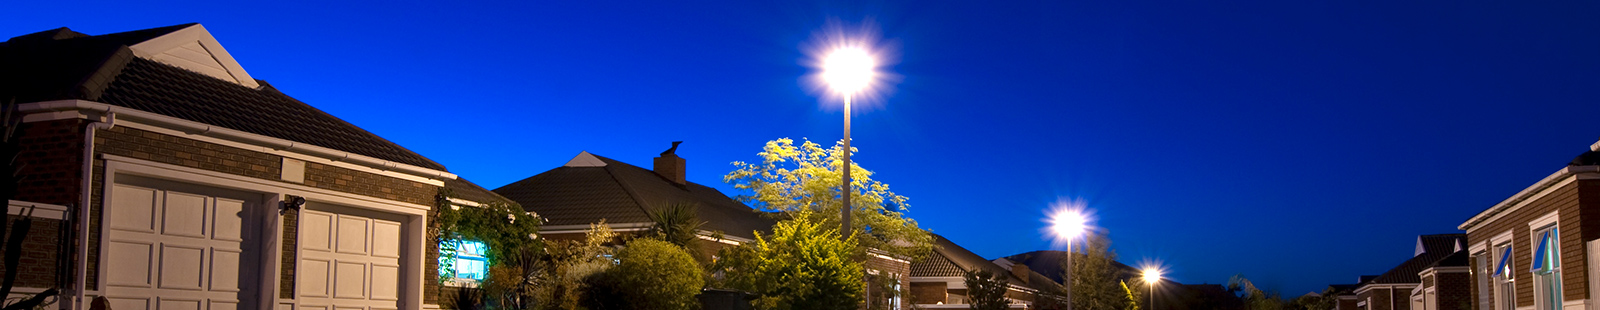 Street view of homes at night with streetlamps